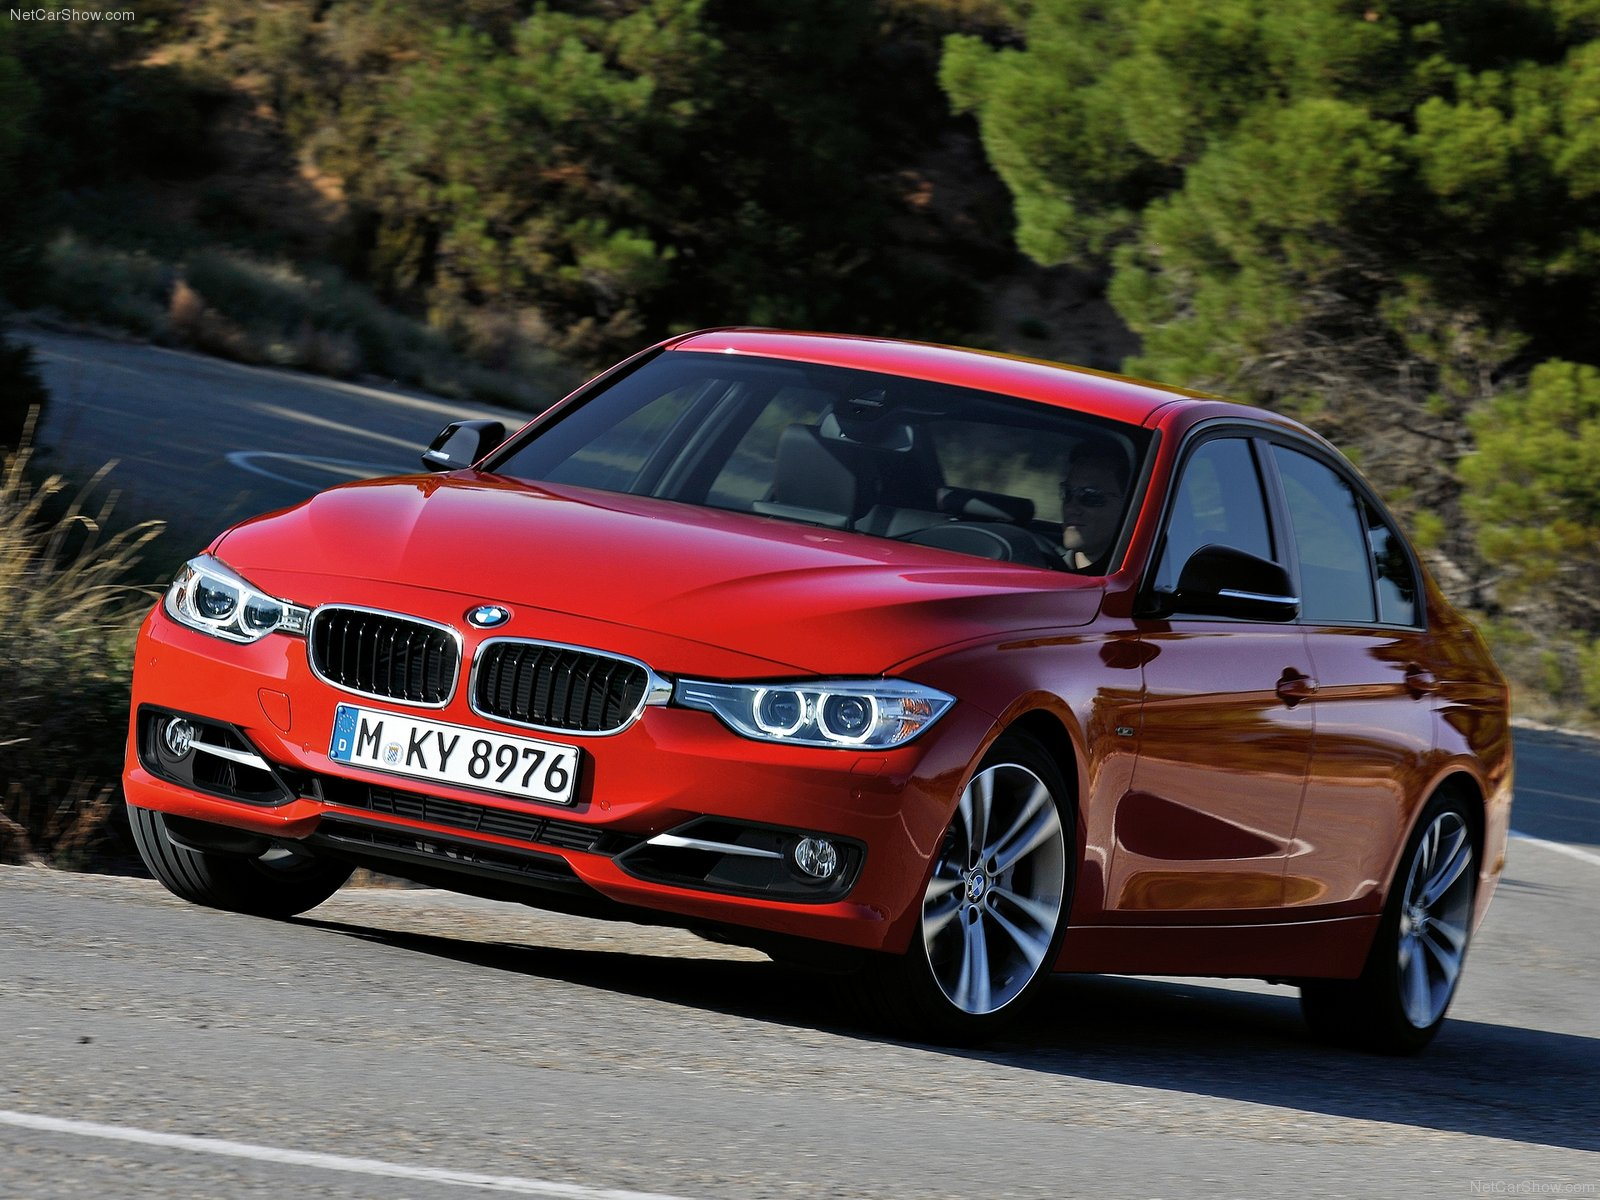 bmw 3 series f30 photos photogallery with 94 pics. Black Bedroom Furniture Sets. Home Design Ideas